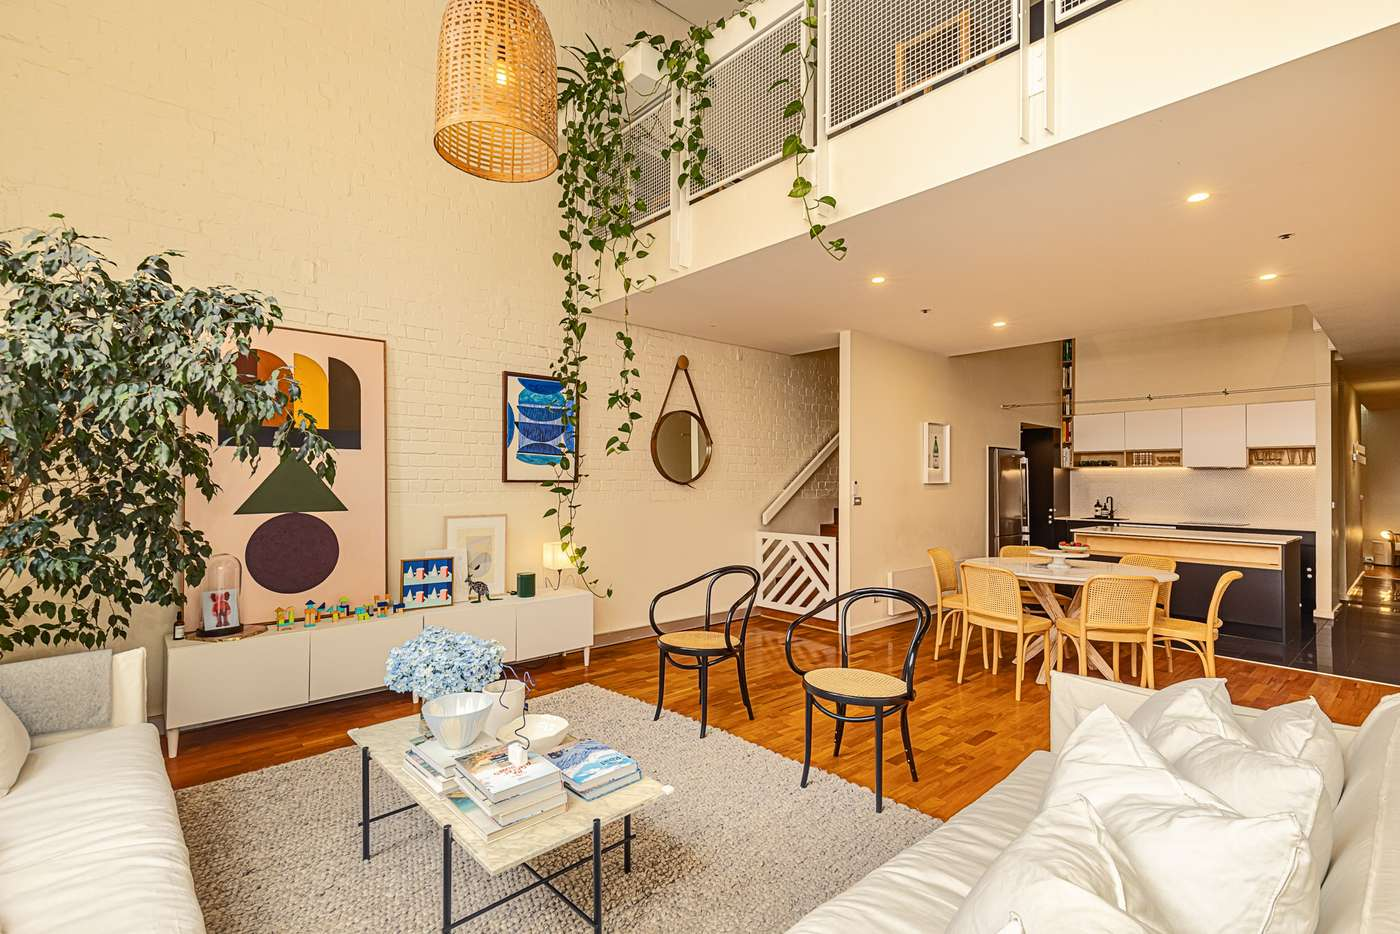 Main view of Homely apartment listing, 1/79 Oxford Street, Collingwood VIC 3066